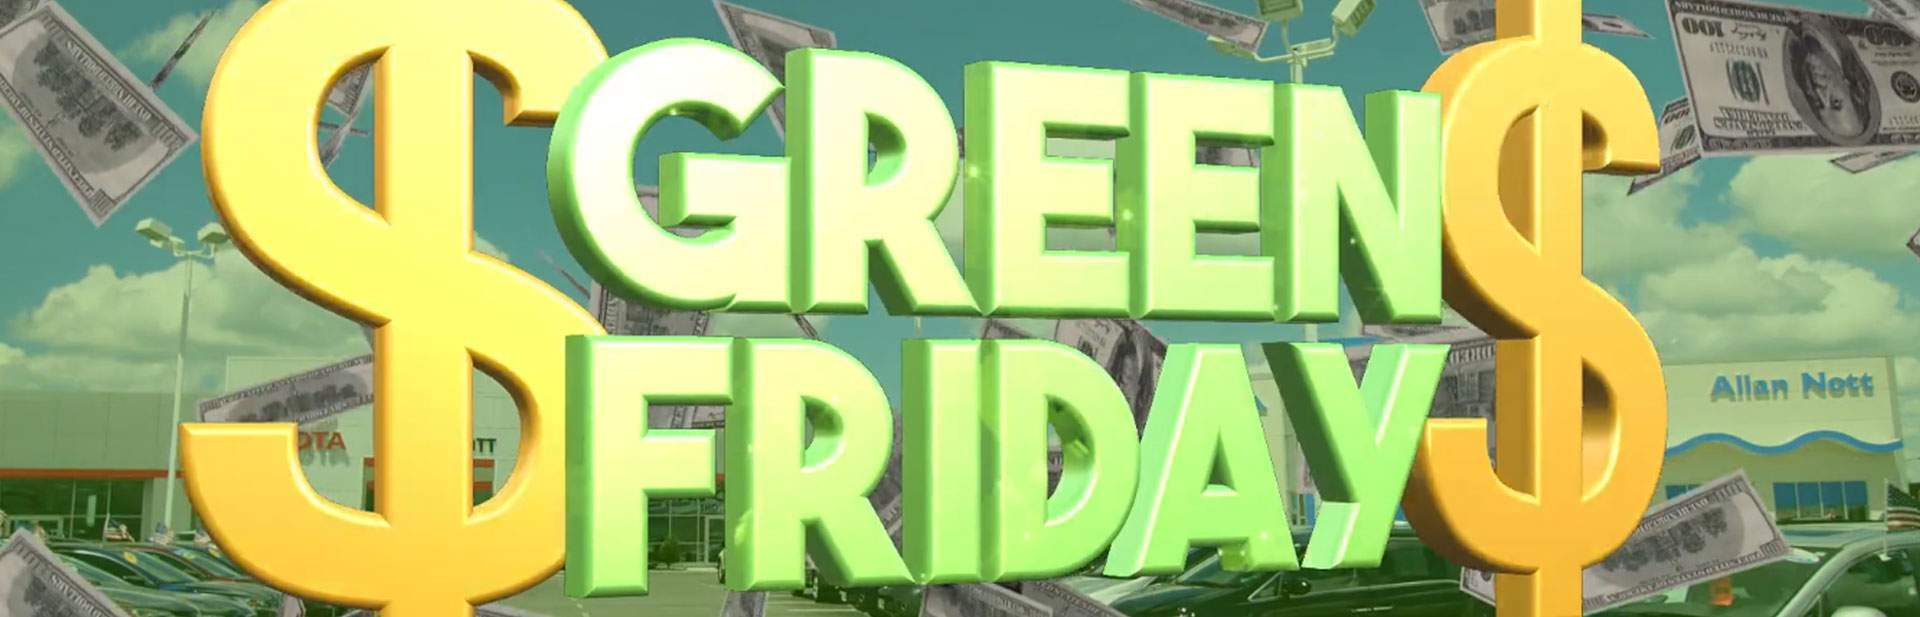 GREEN FRIDAY is back at Allan Nott!